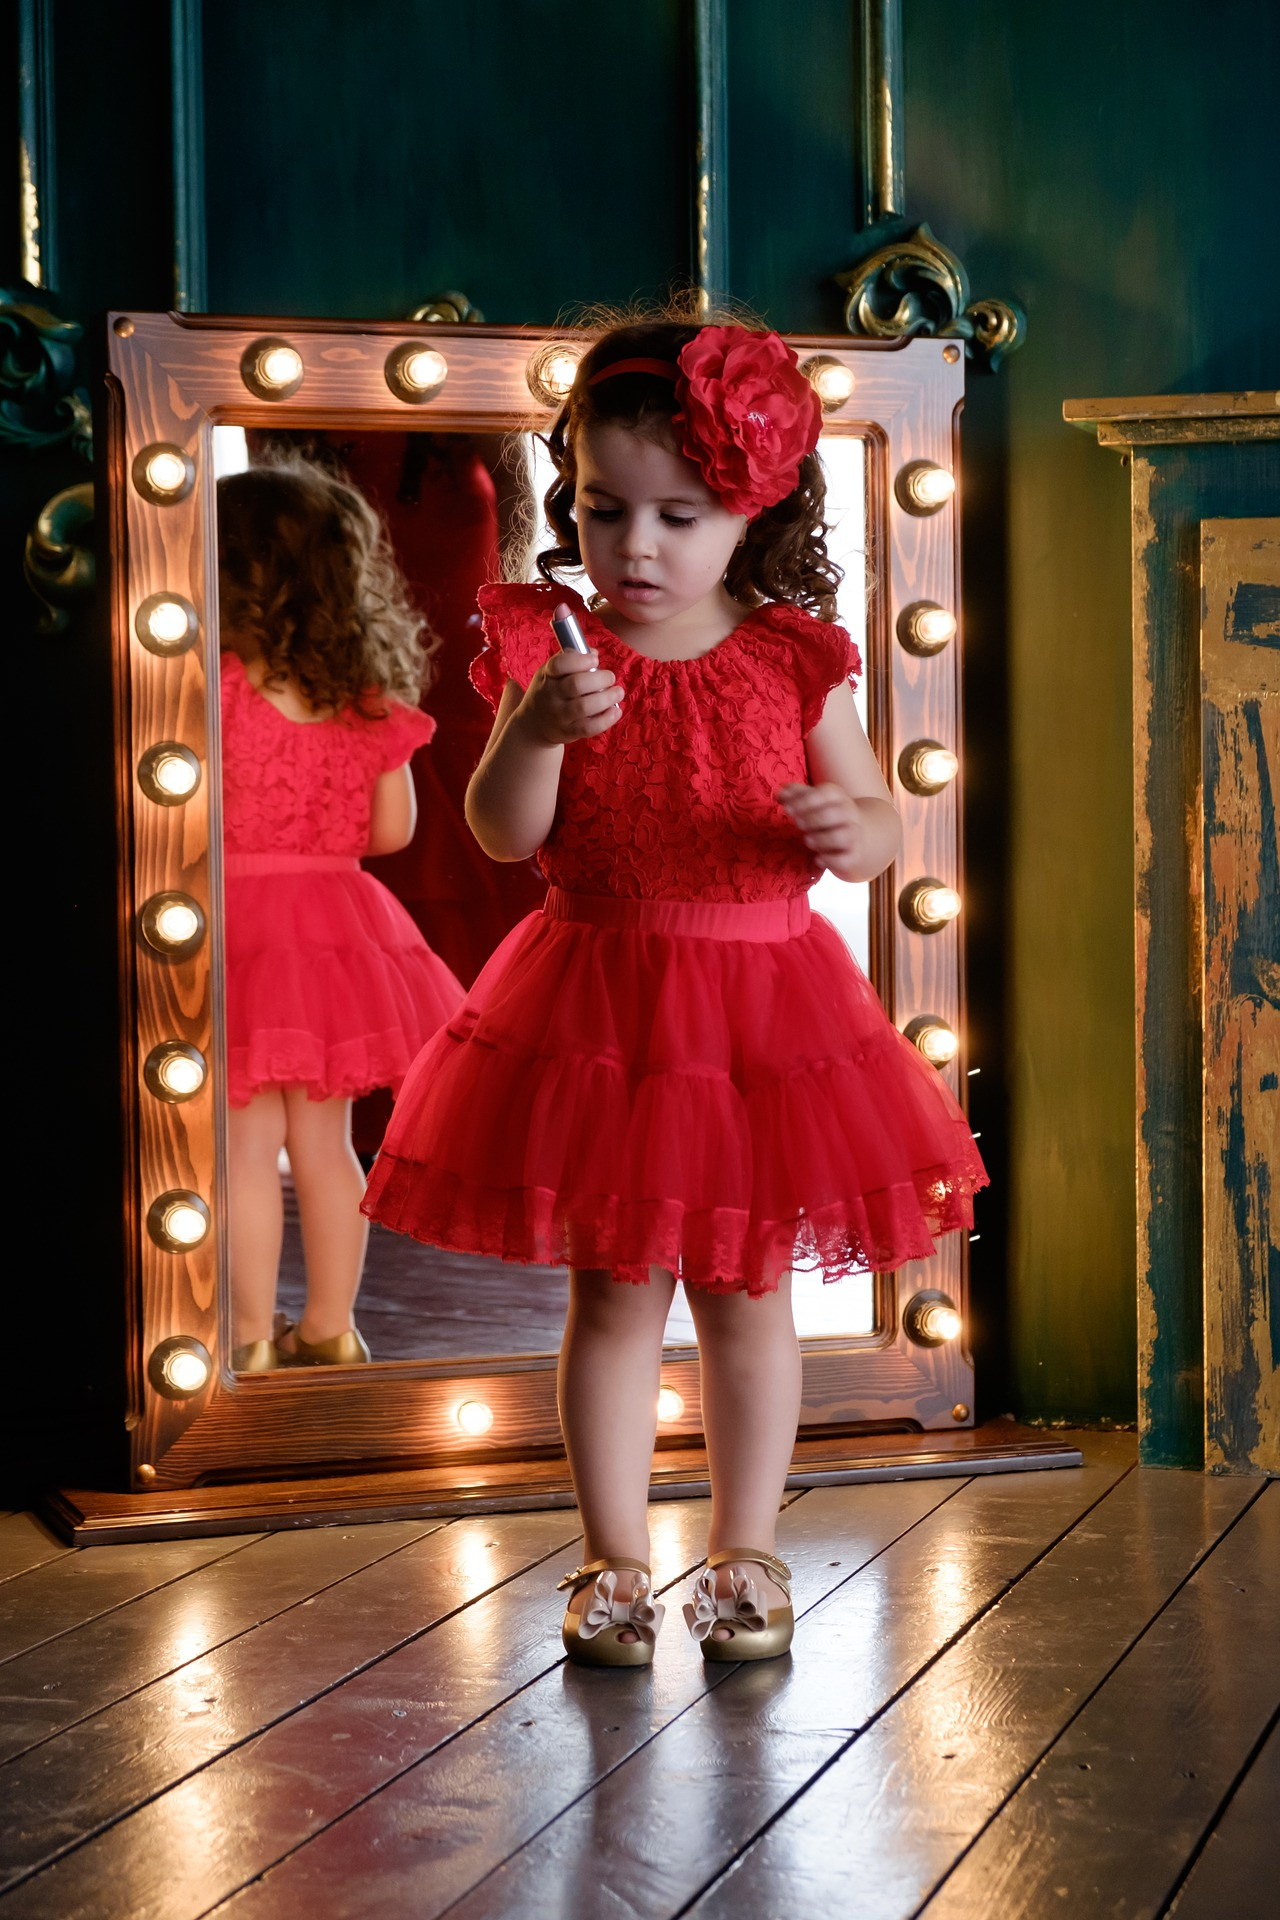 e29a1624b22e5 Why We Need to Stop Telling Little Girls How Pretty They Are | Psychology  Today